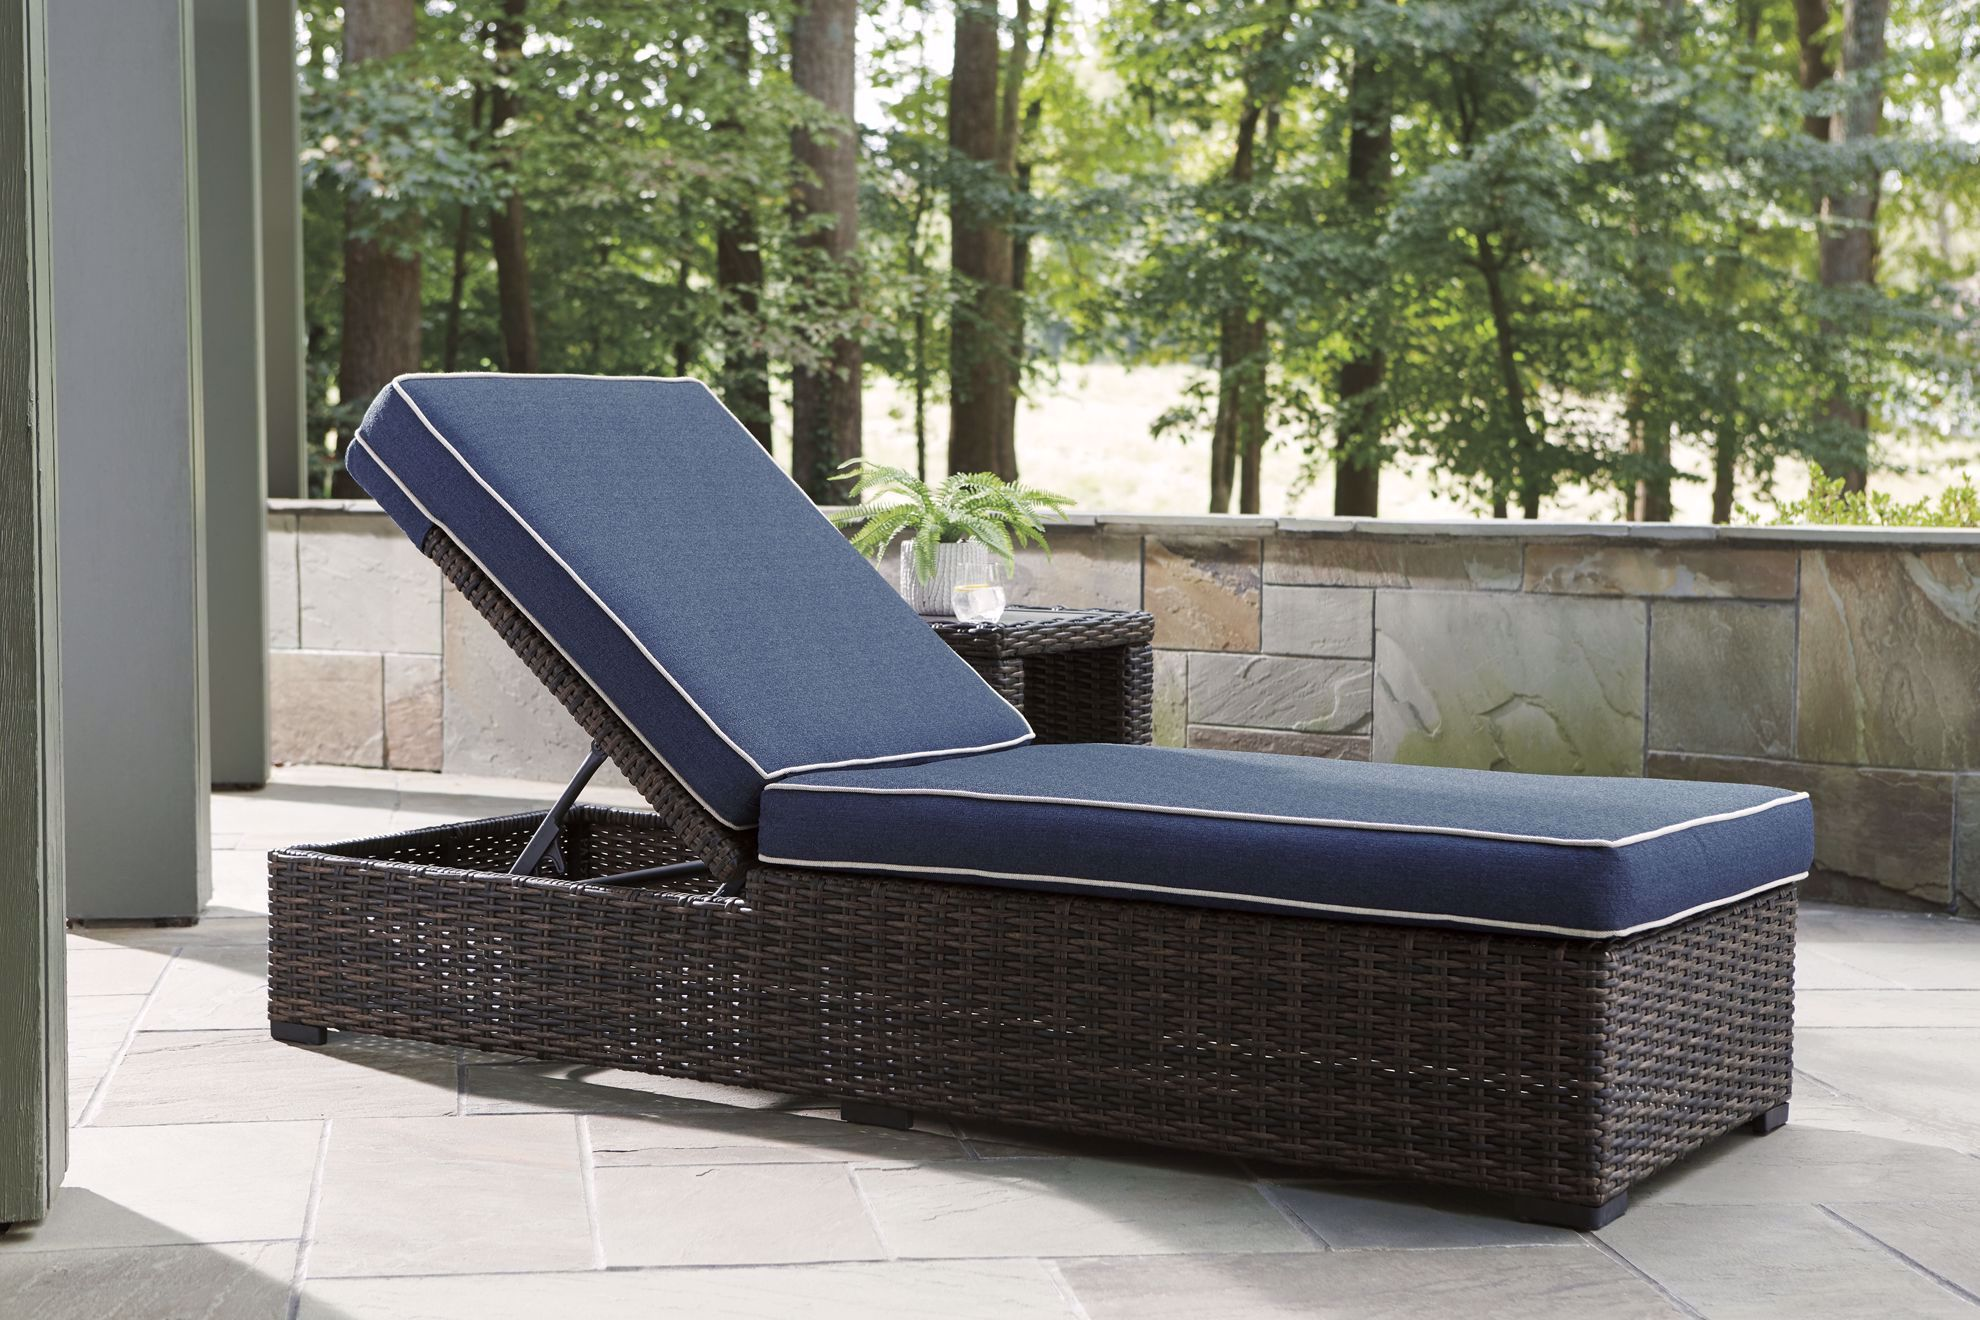 Picture of Grasson Lane Cushion Chaise Lounge